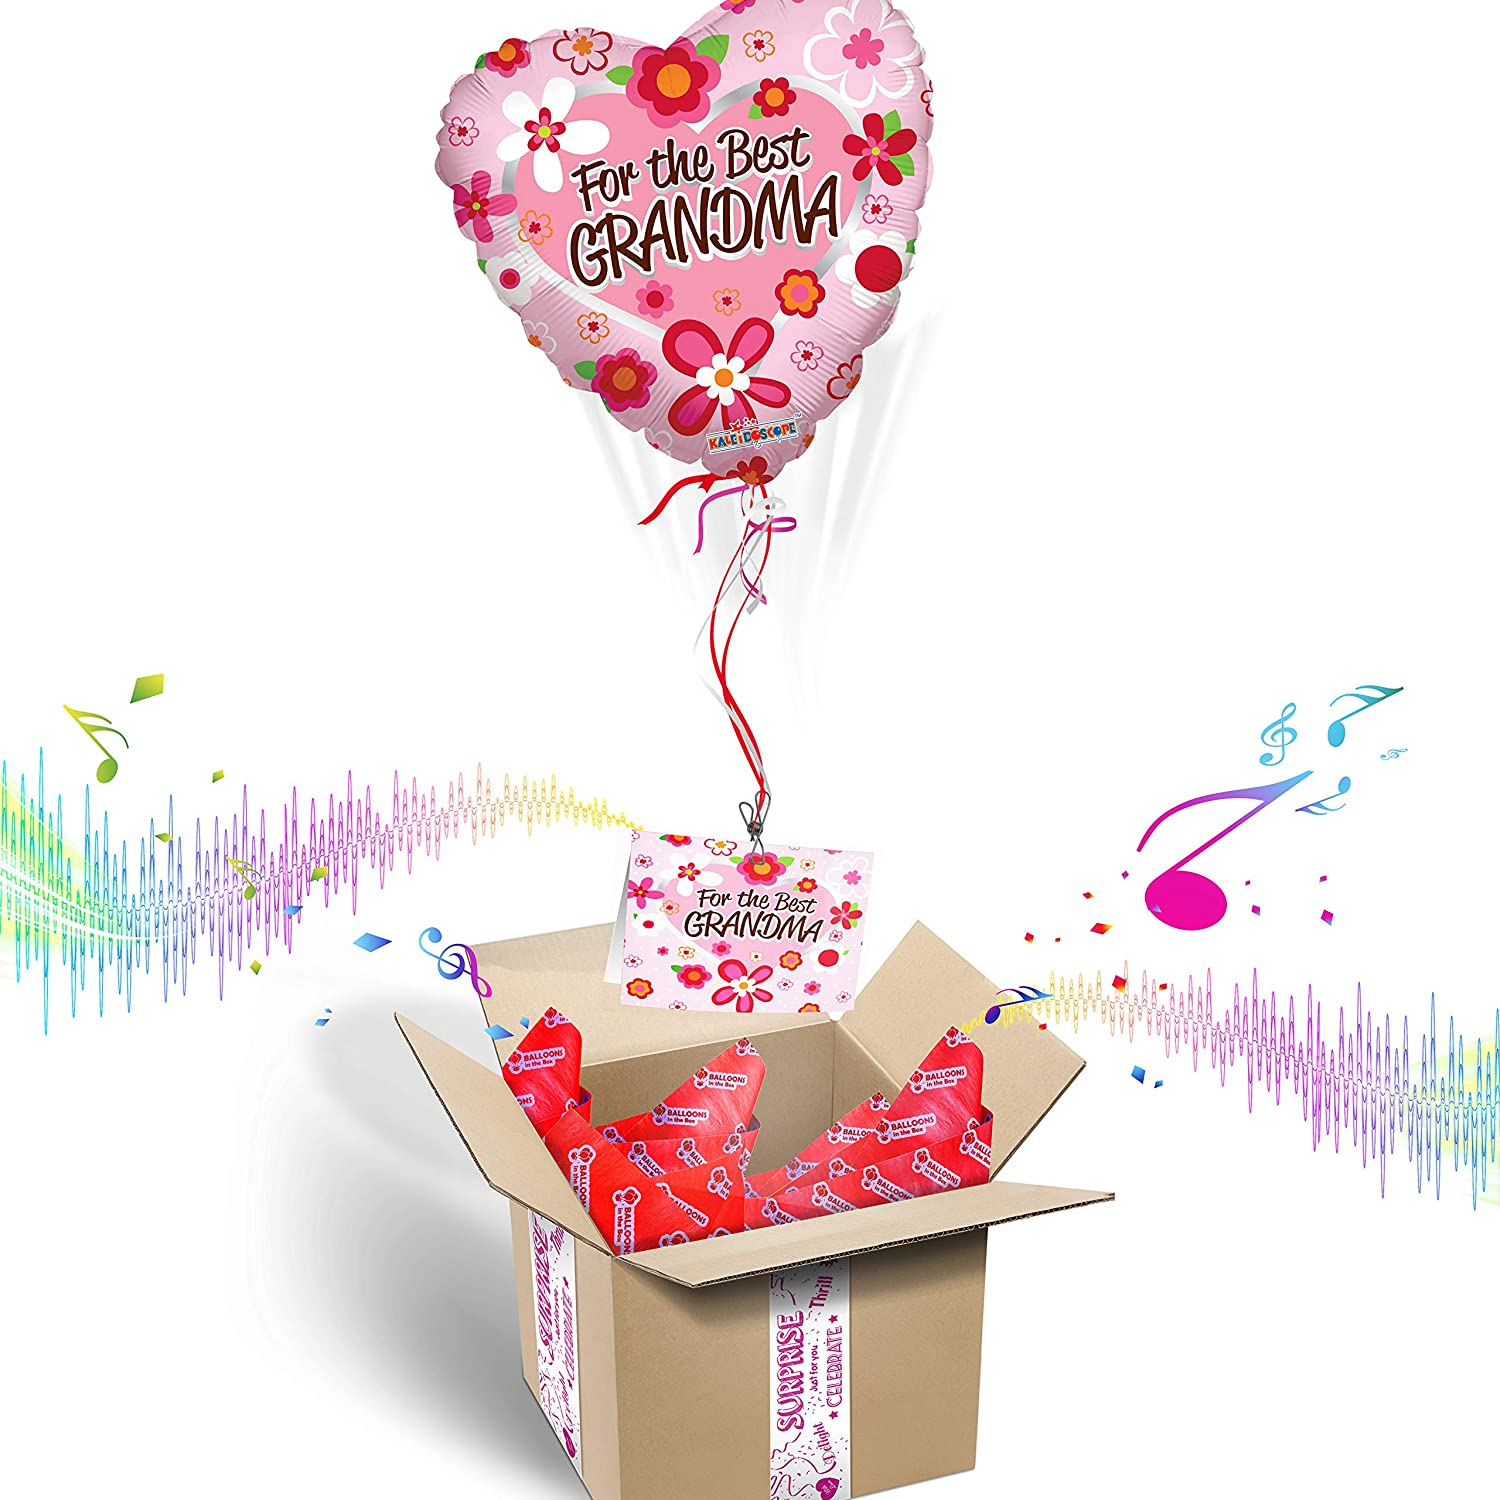 For The Best Grandma Balloons In The Box Grandparent